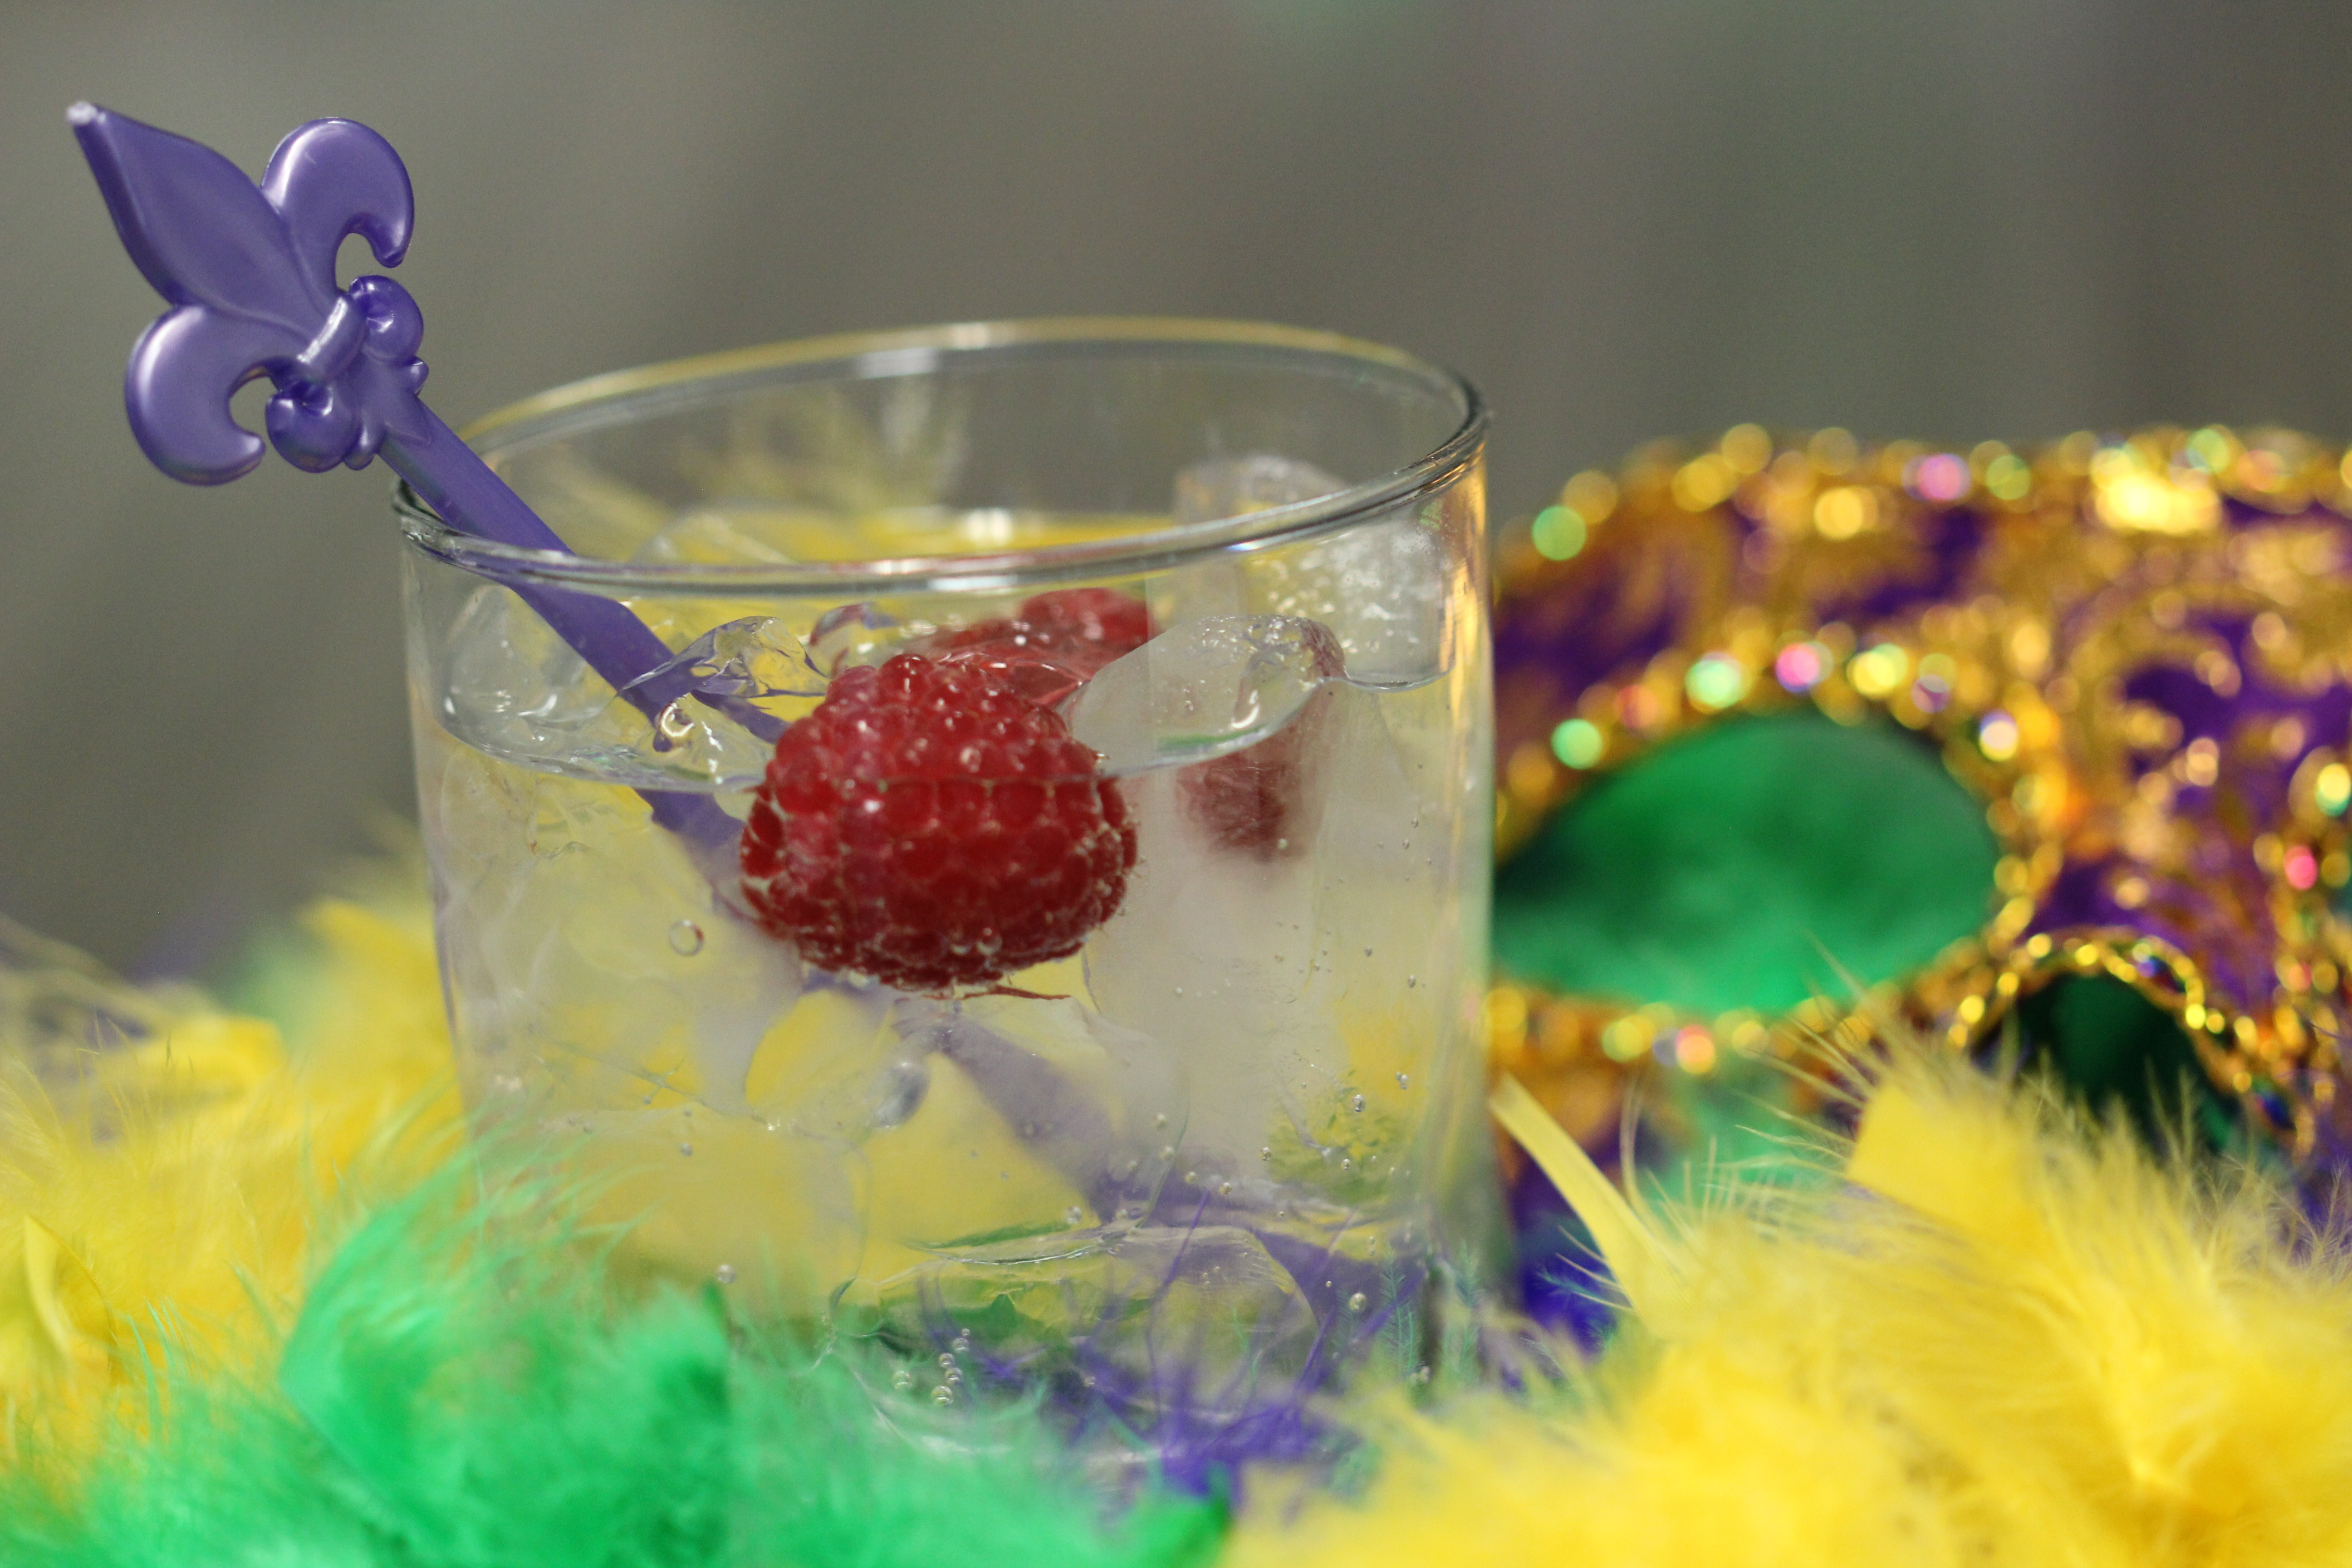 The Themes That Will Make Your Party The One To Remember!